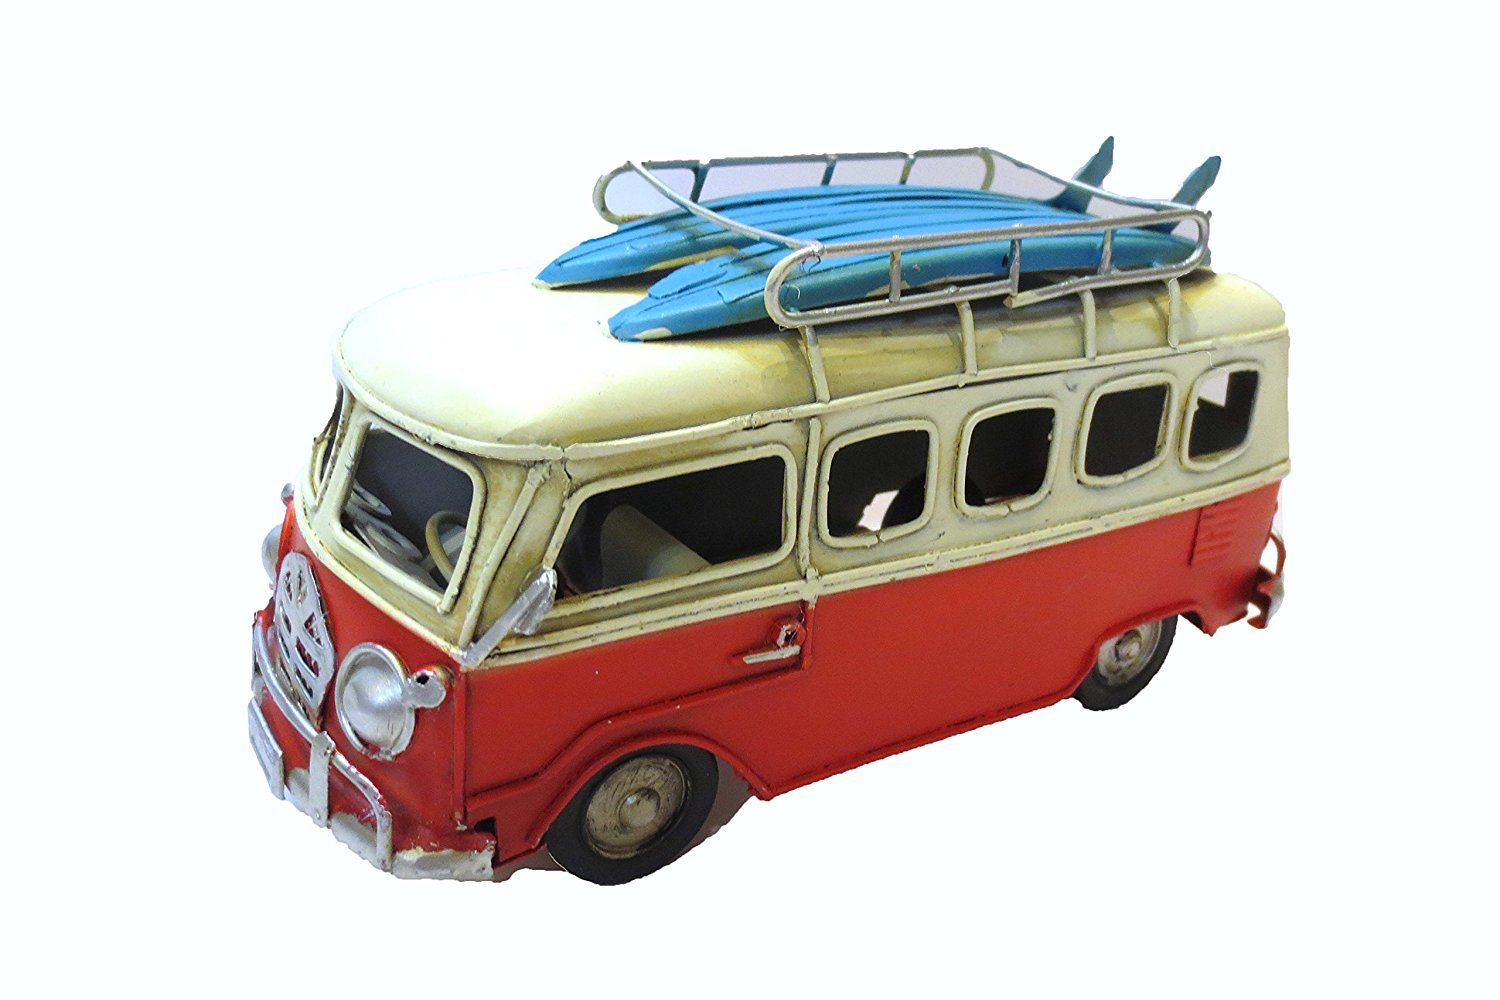 Vintage Looking VW Type Beach Bus Surfers Van Model with Surfboards Moby dick